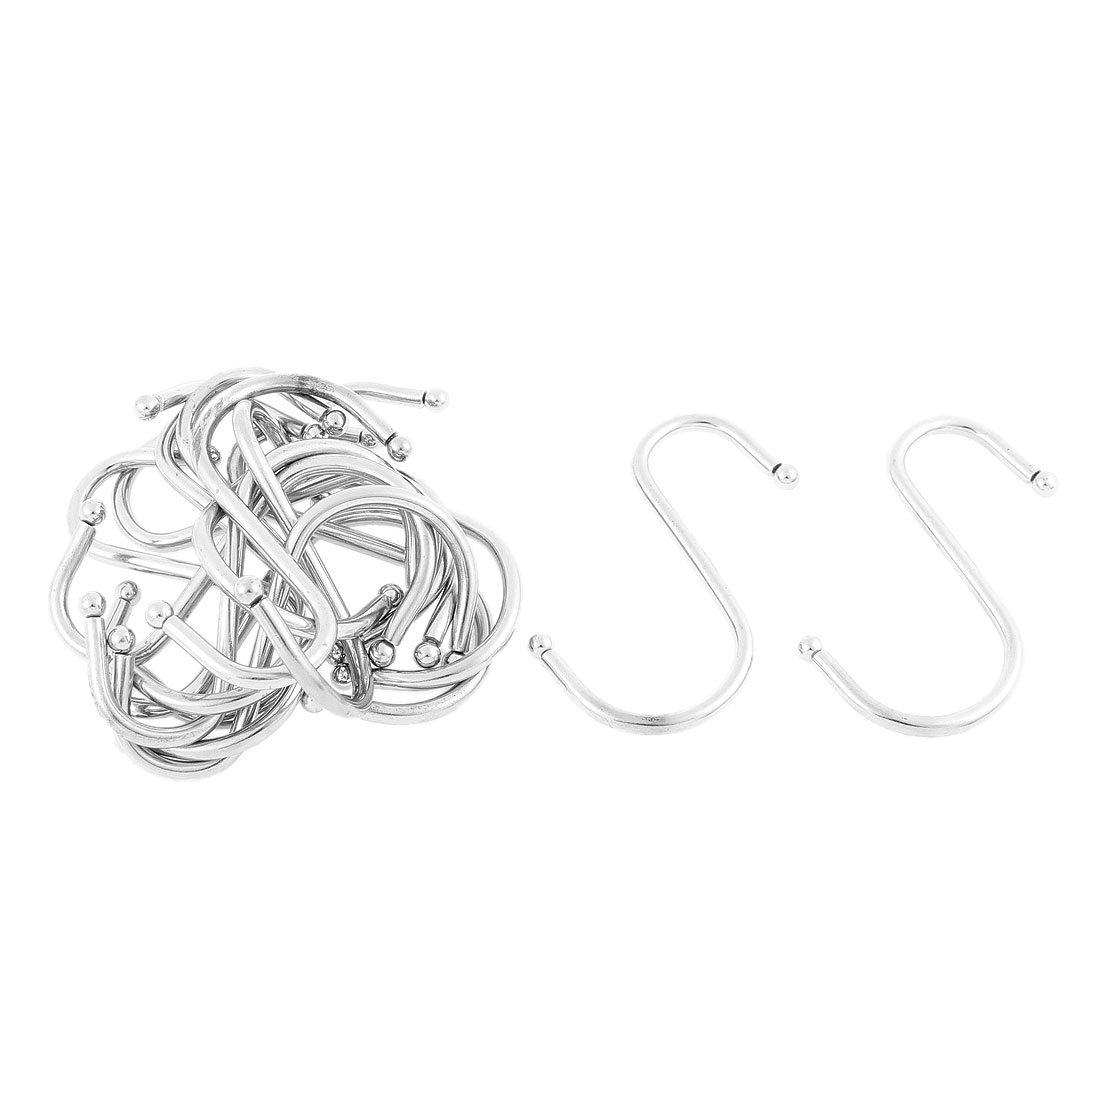 Home Metal S Shaped Hanger Clasp Hooks 2.5 Inch Length 15 Pcs